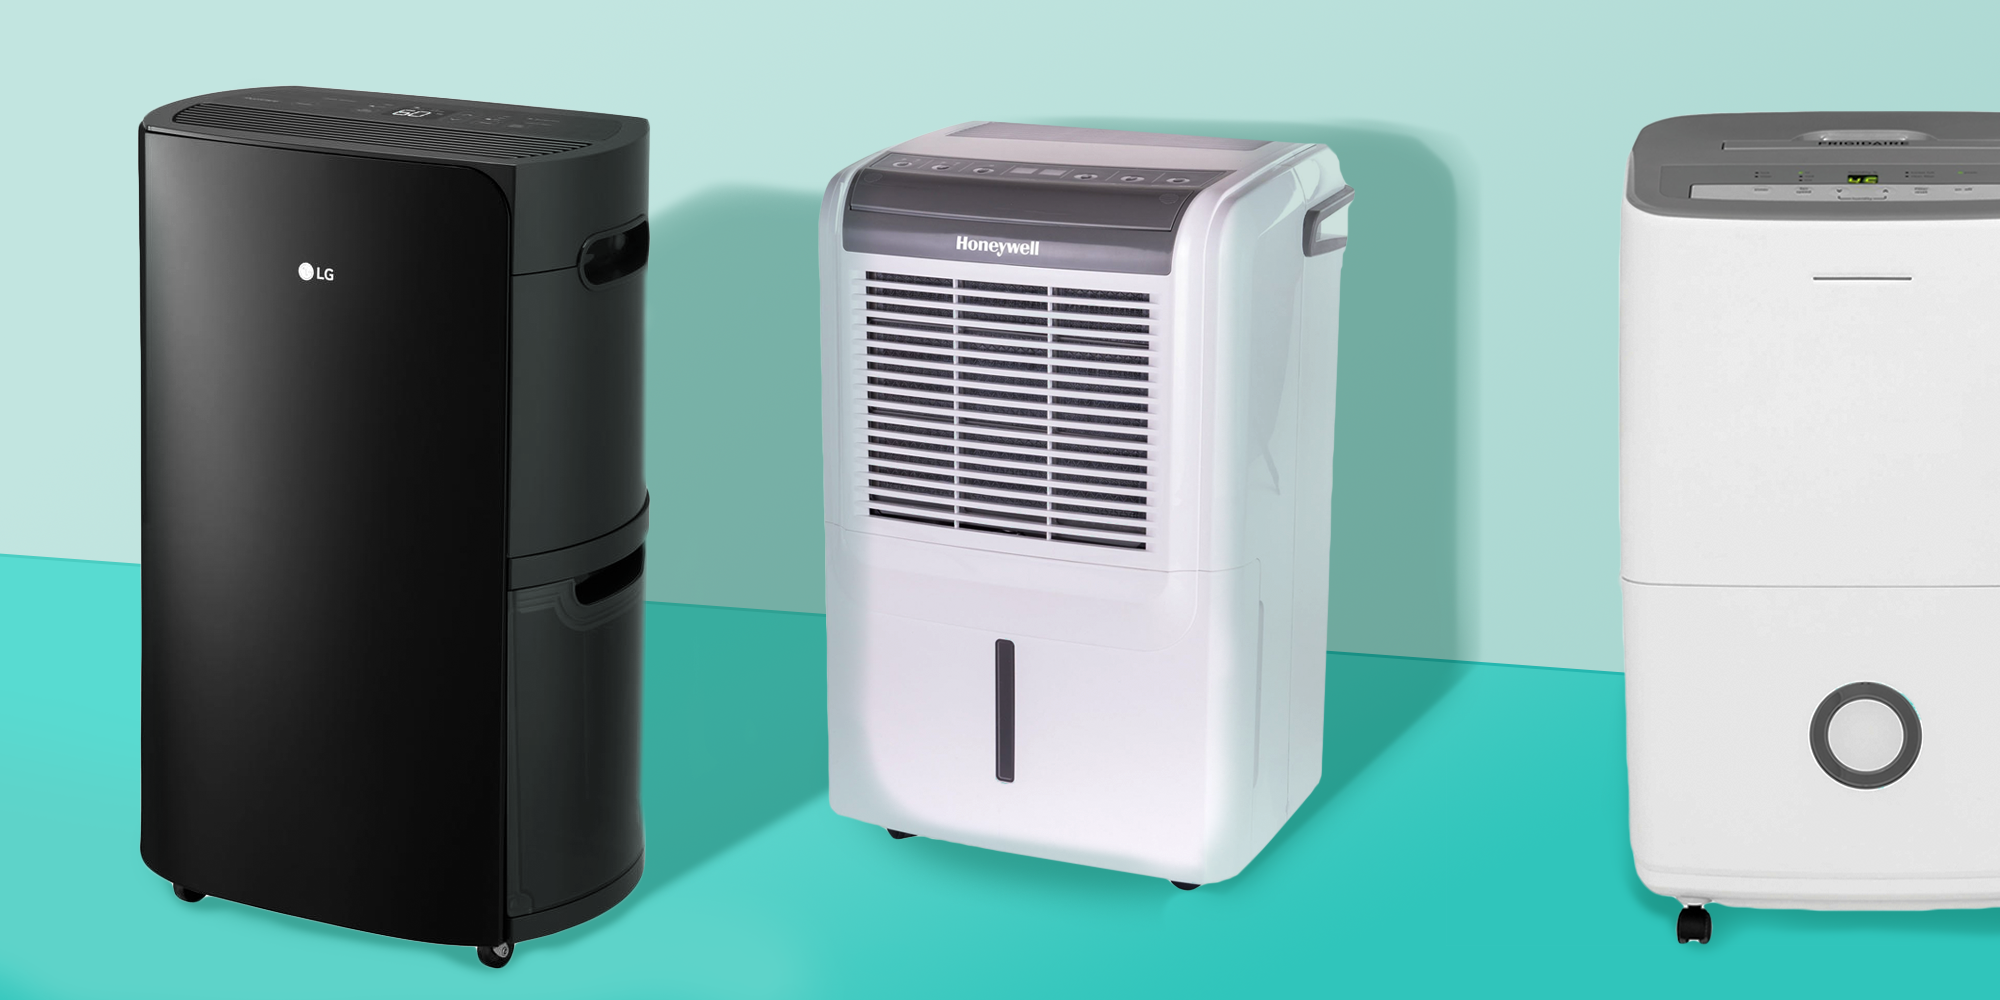 5 Best Dehumidifiers for 2020 - Top